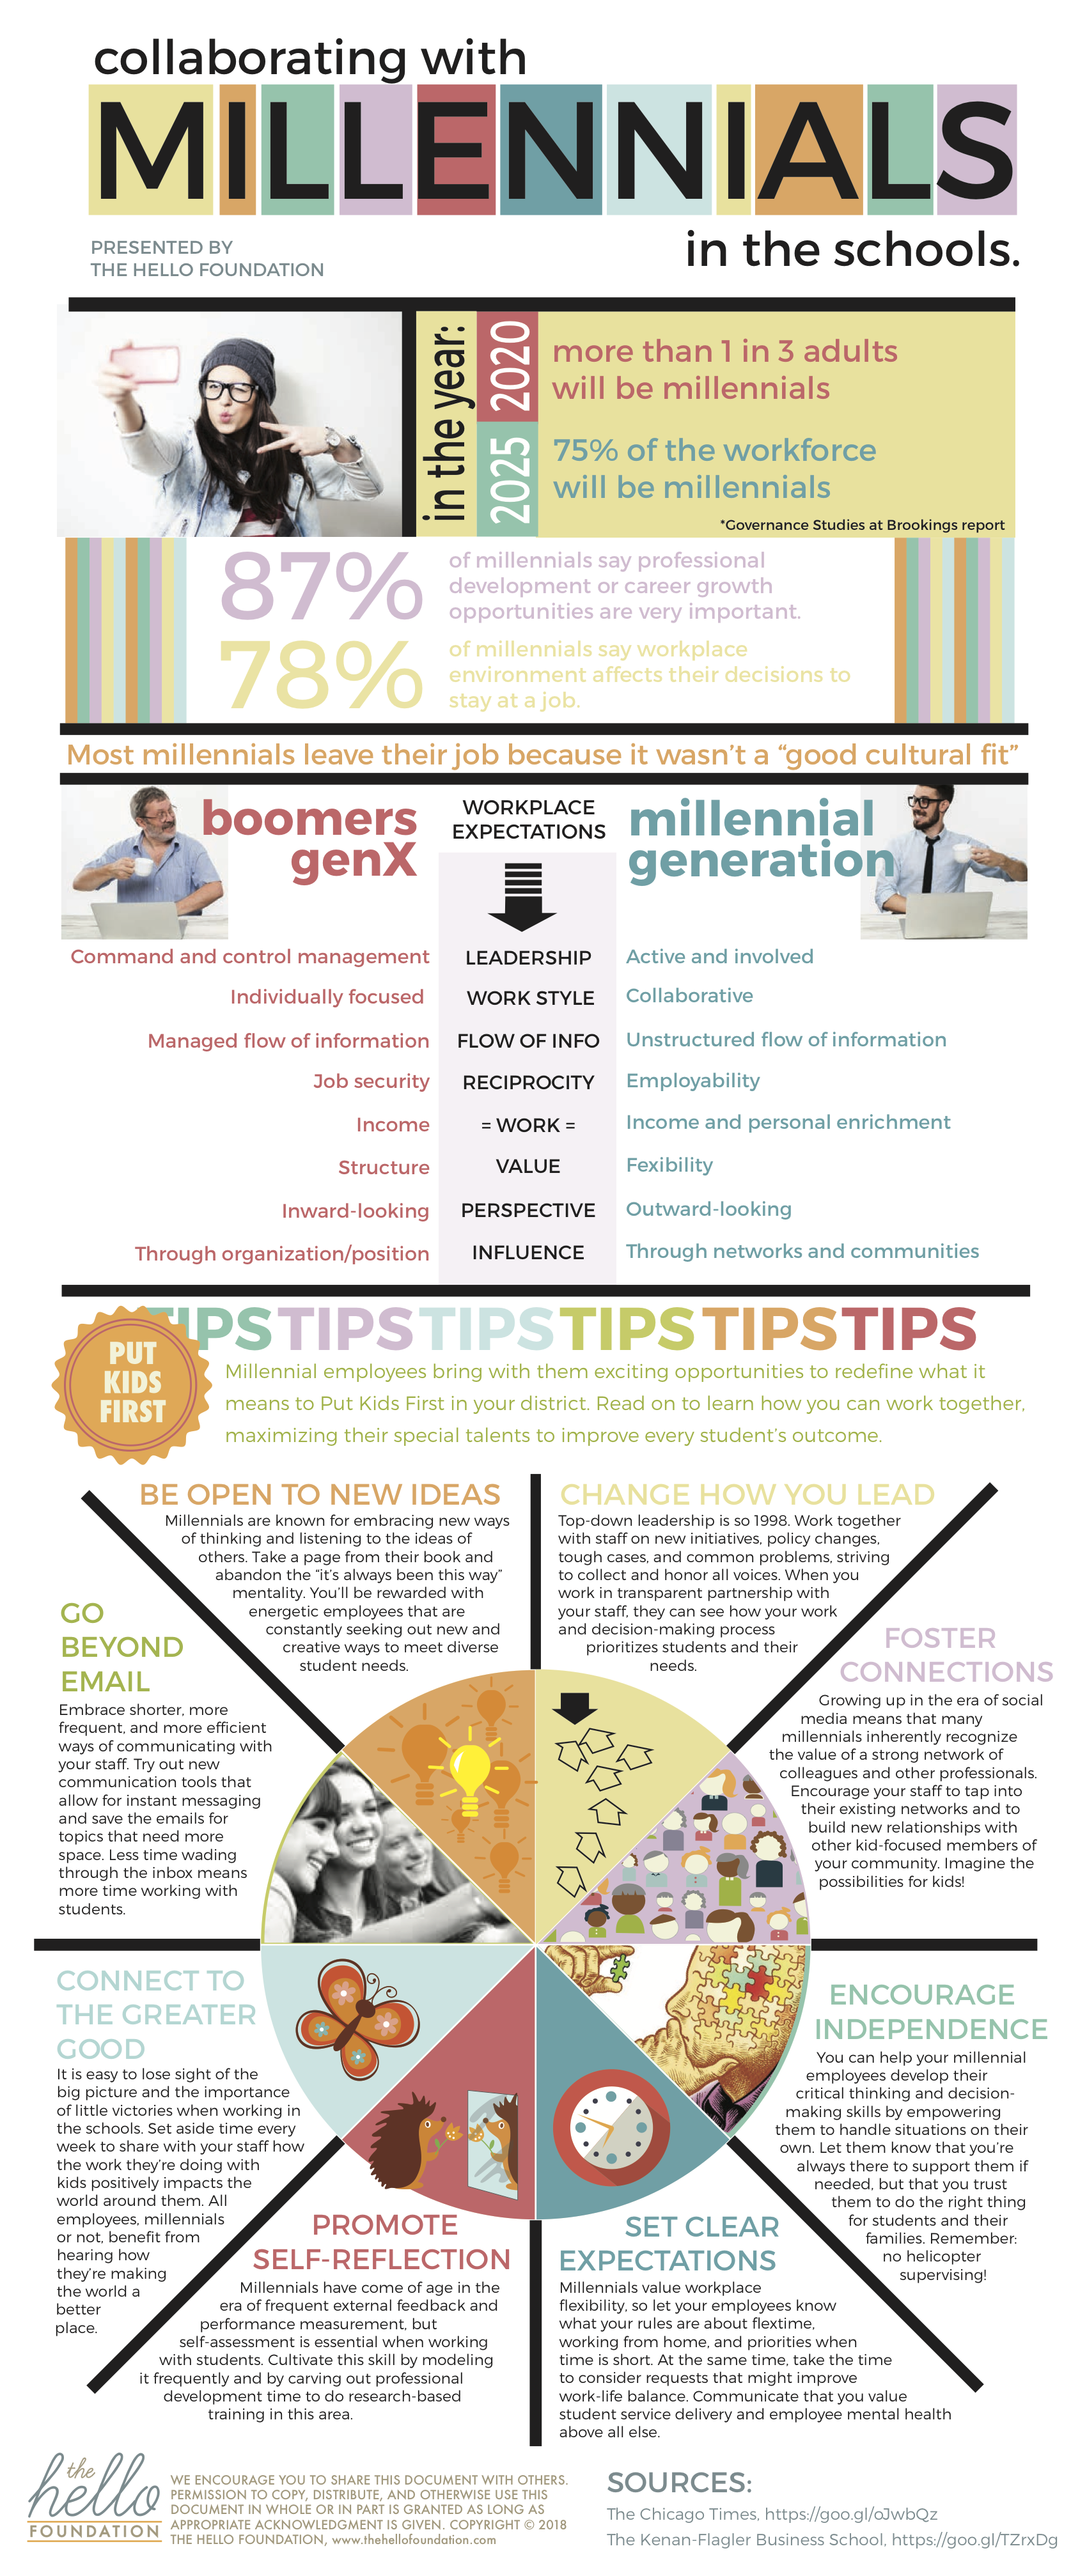 Collaborating with Millennials in the schools infographic